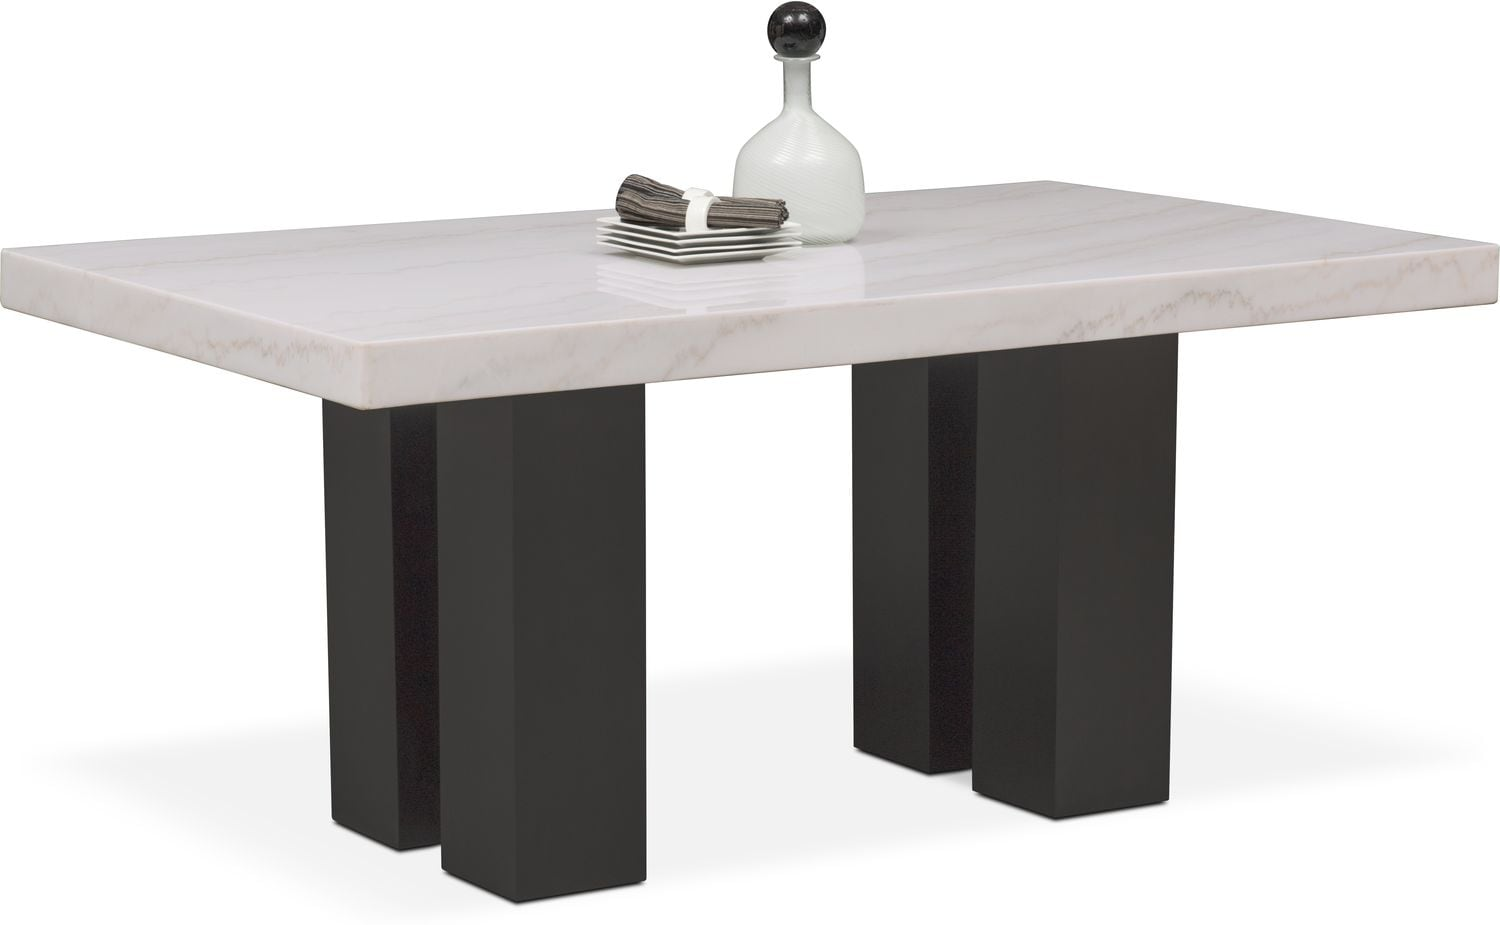 Dining Room Furniture - Artemis Dining Table - Marble